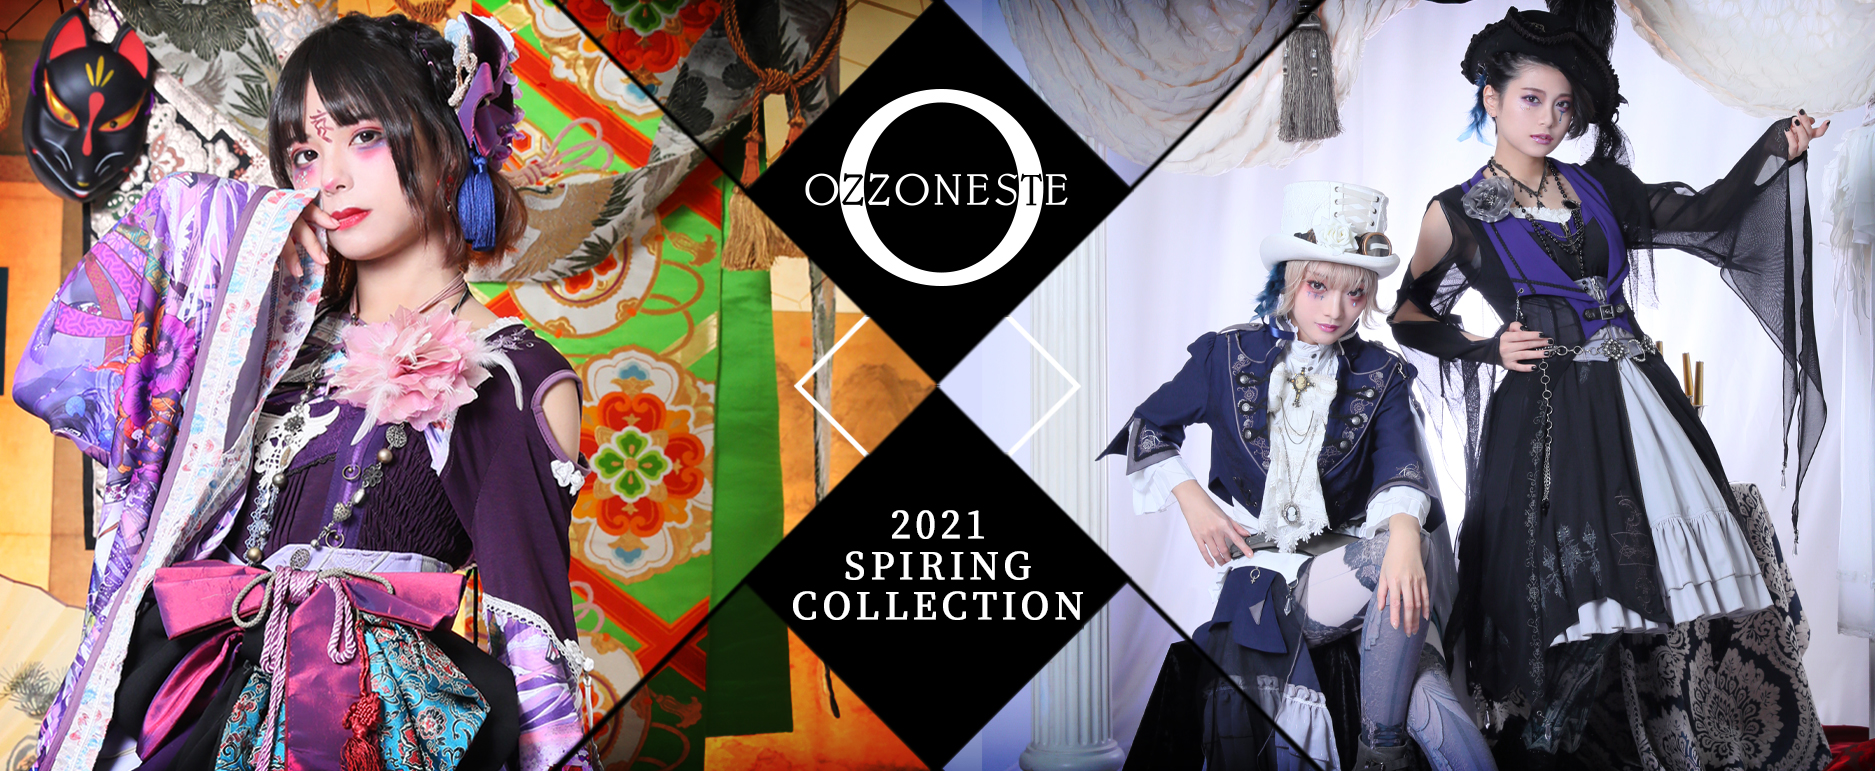 2021oneaste collection